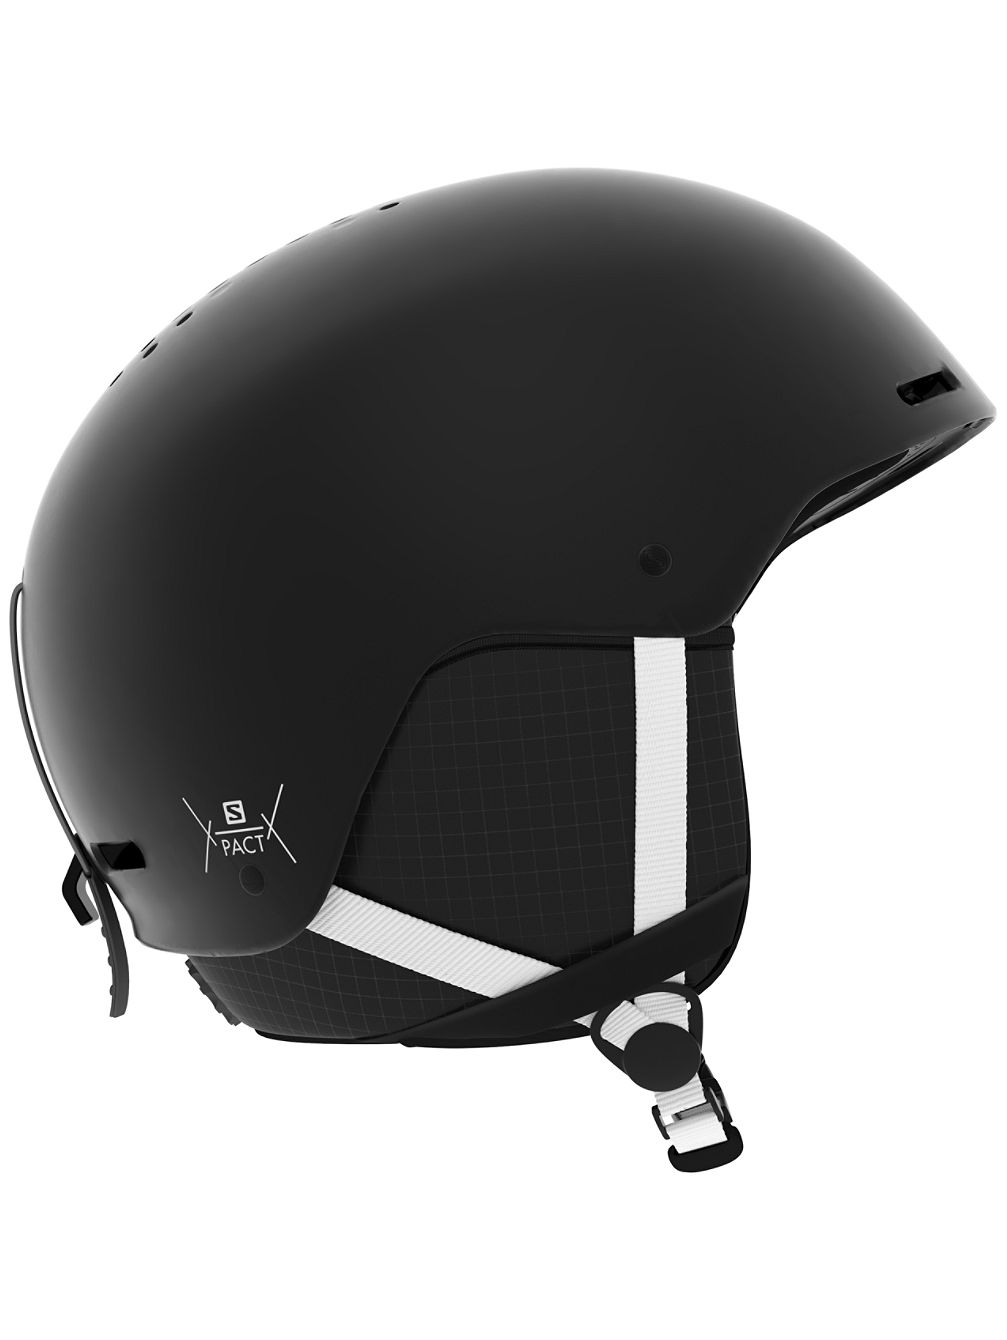 Pact Snowboard Helm